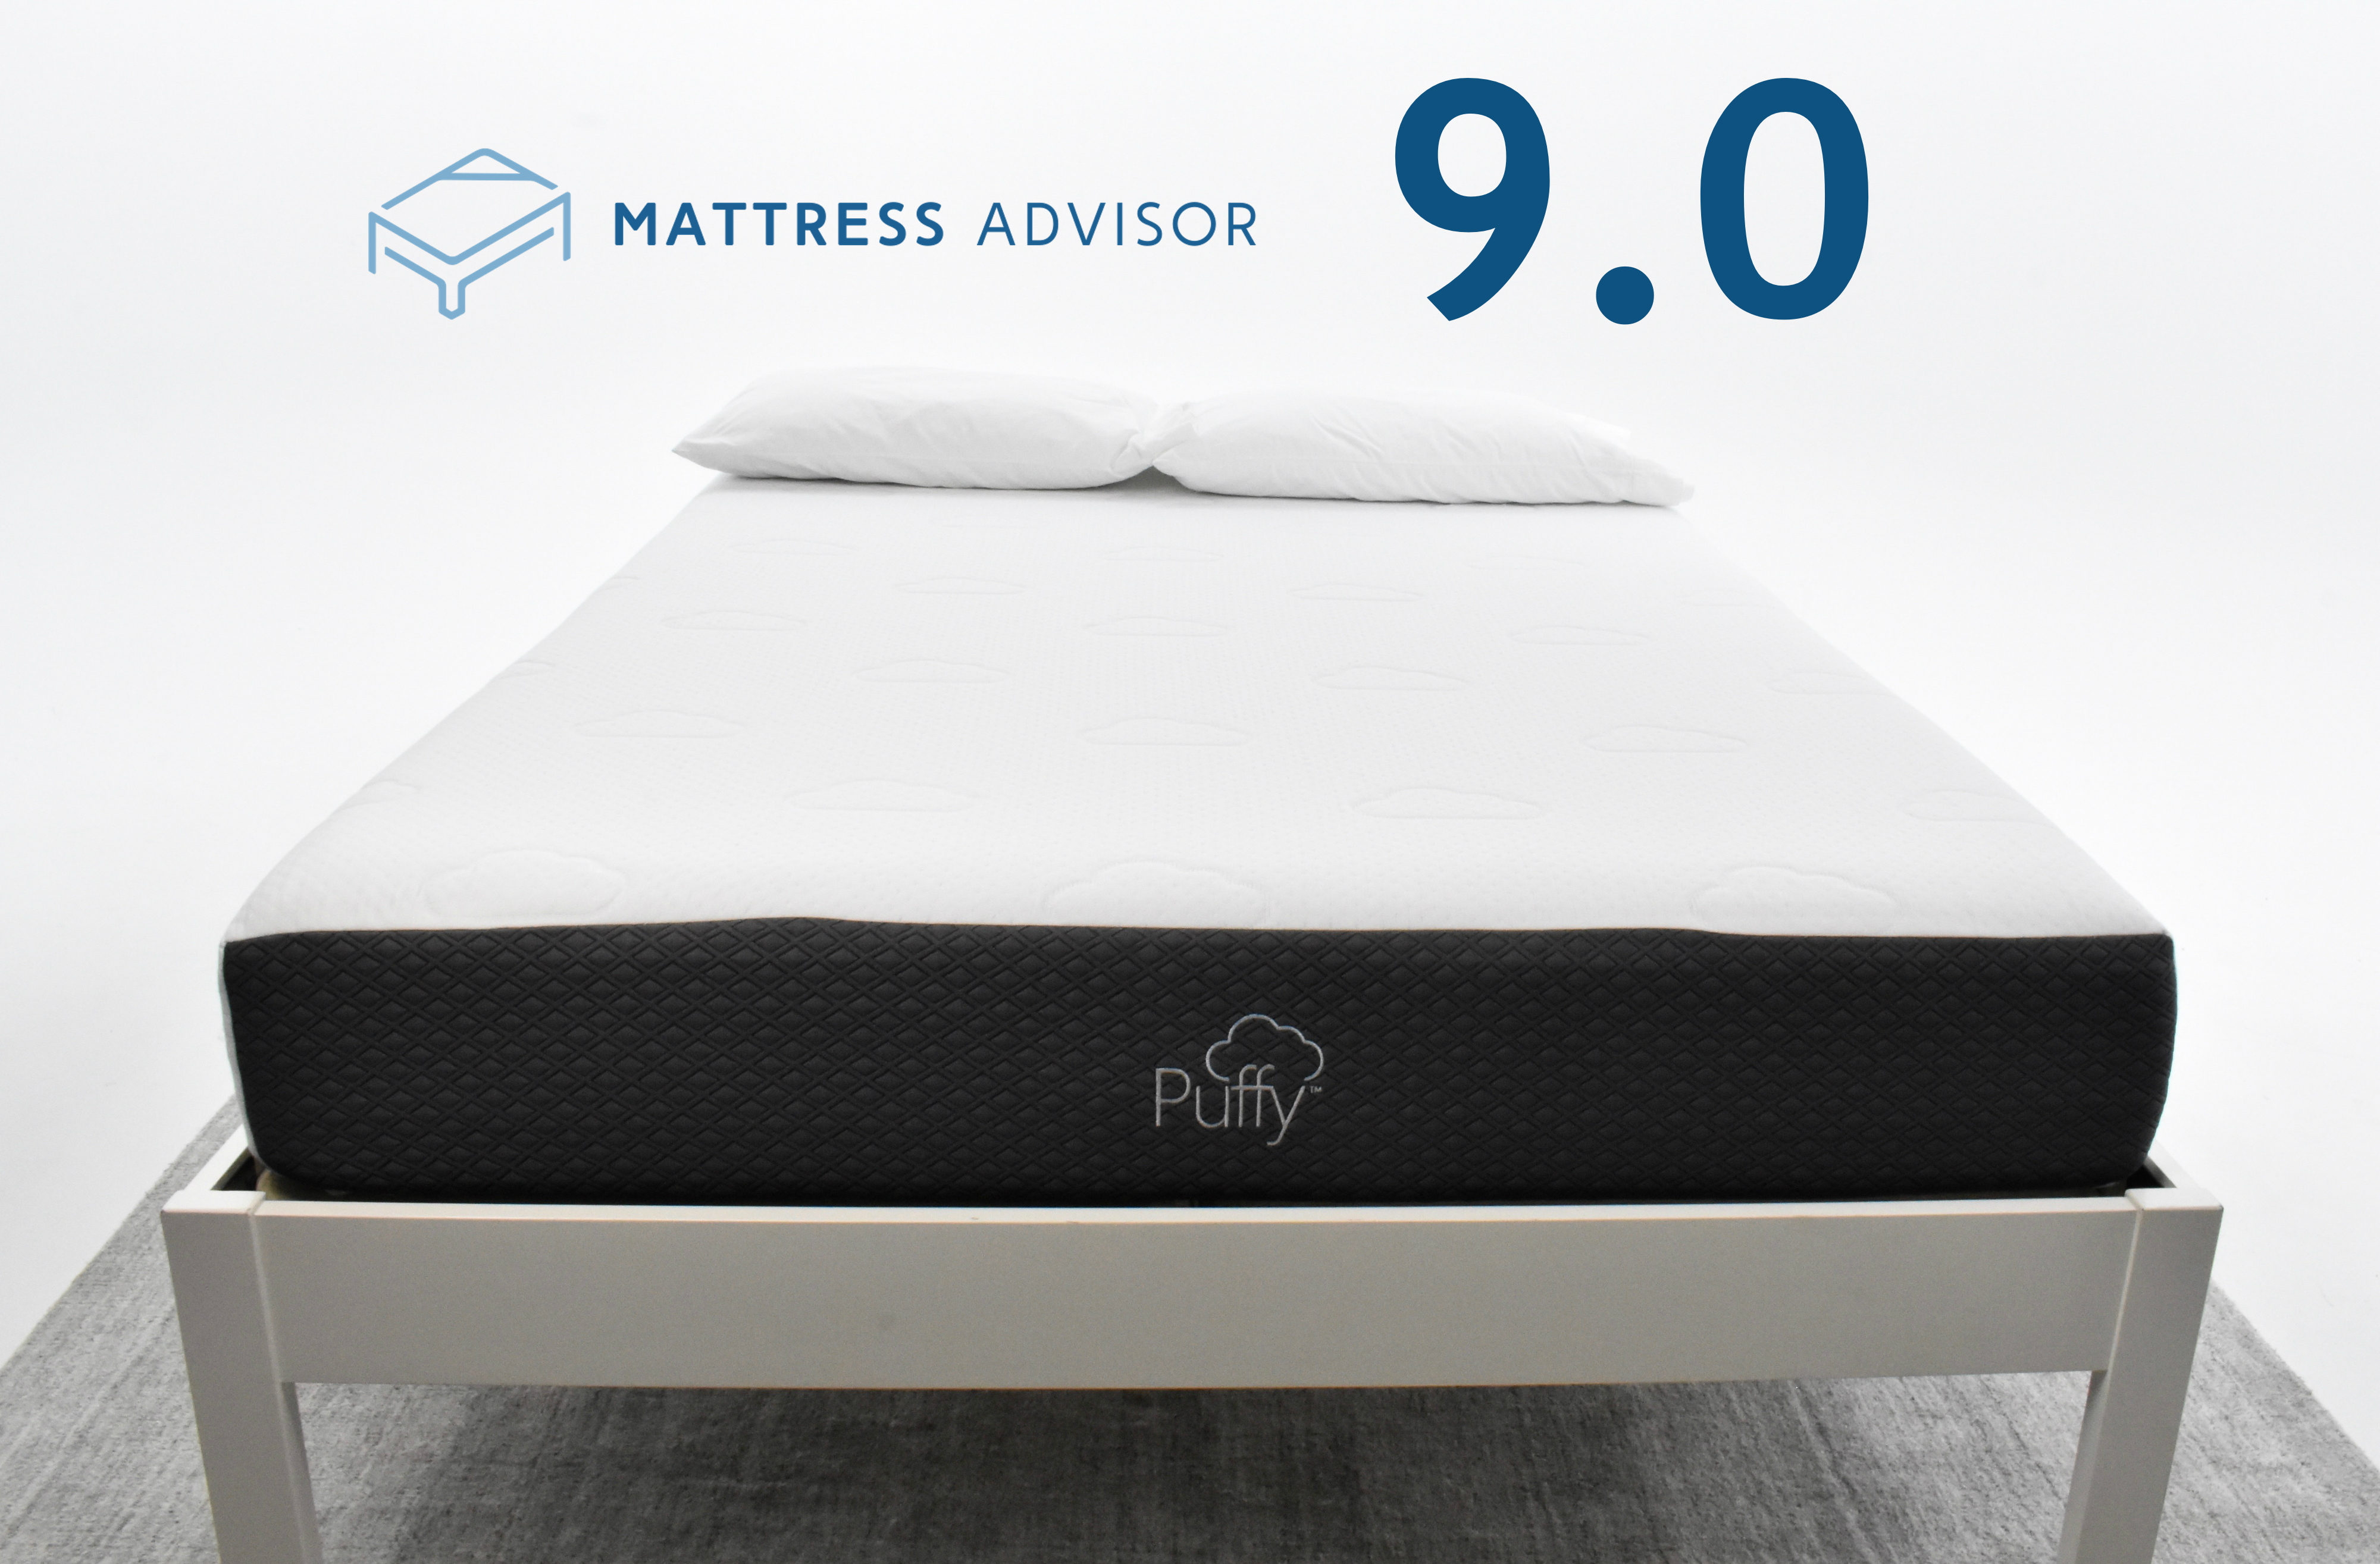 932cd5efba72 Total Score for the Puffy Mattress: